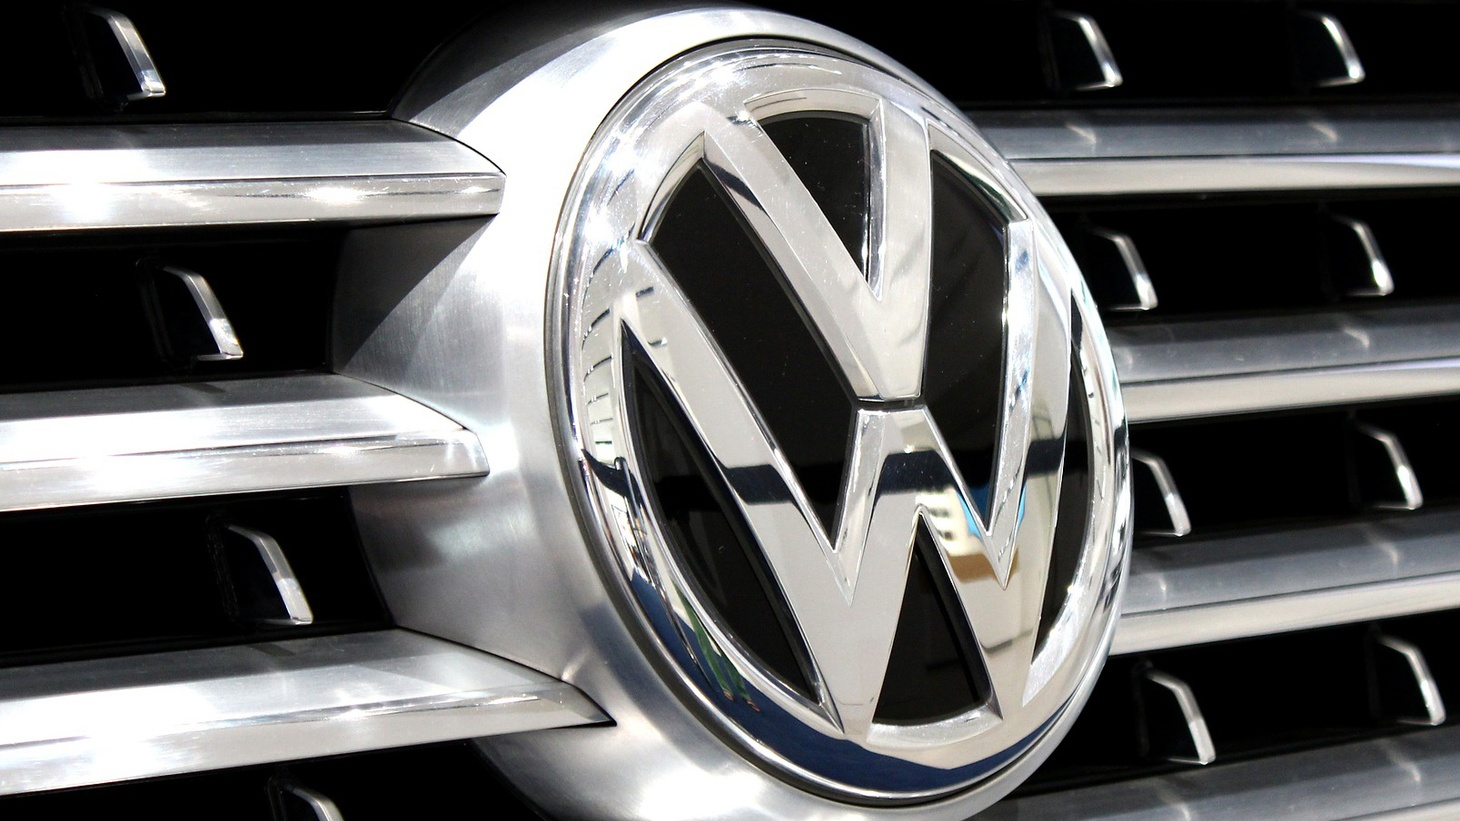 Volkswagen will pay up to $14.7 billion to settle for the so-called clean diesel cars it designed to cheat emissions regulations. What impact will the payout have on the German automaker long-term?